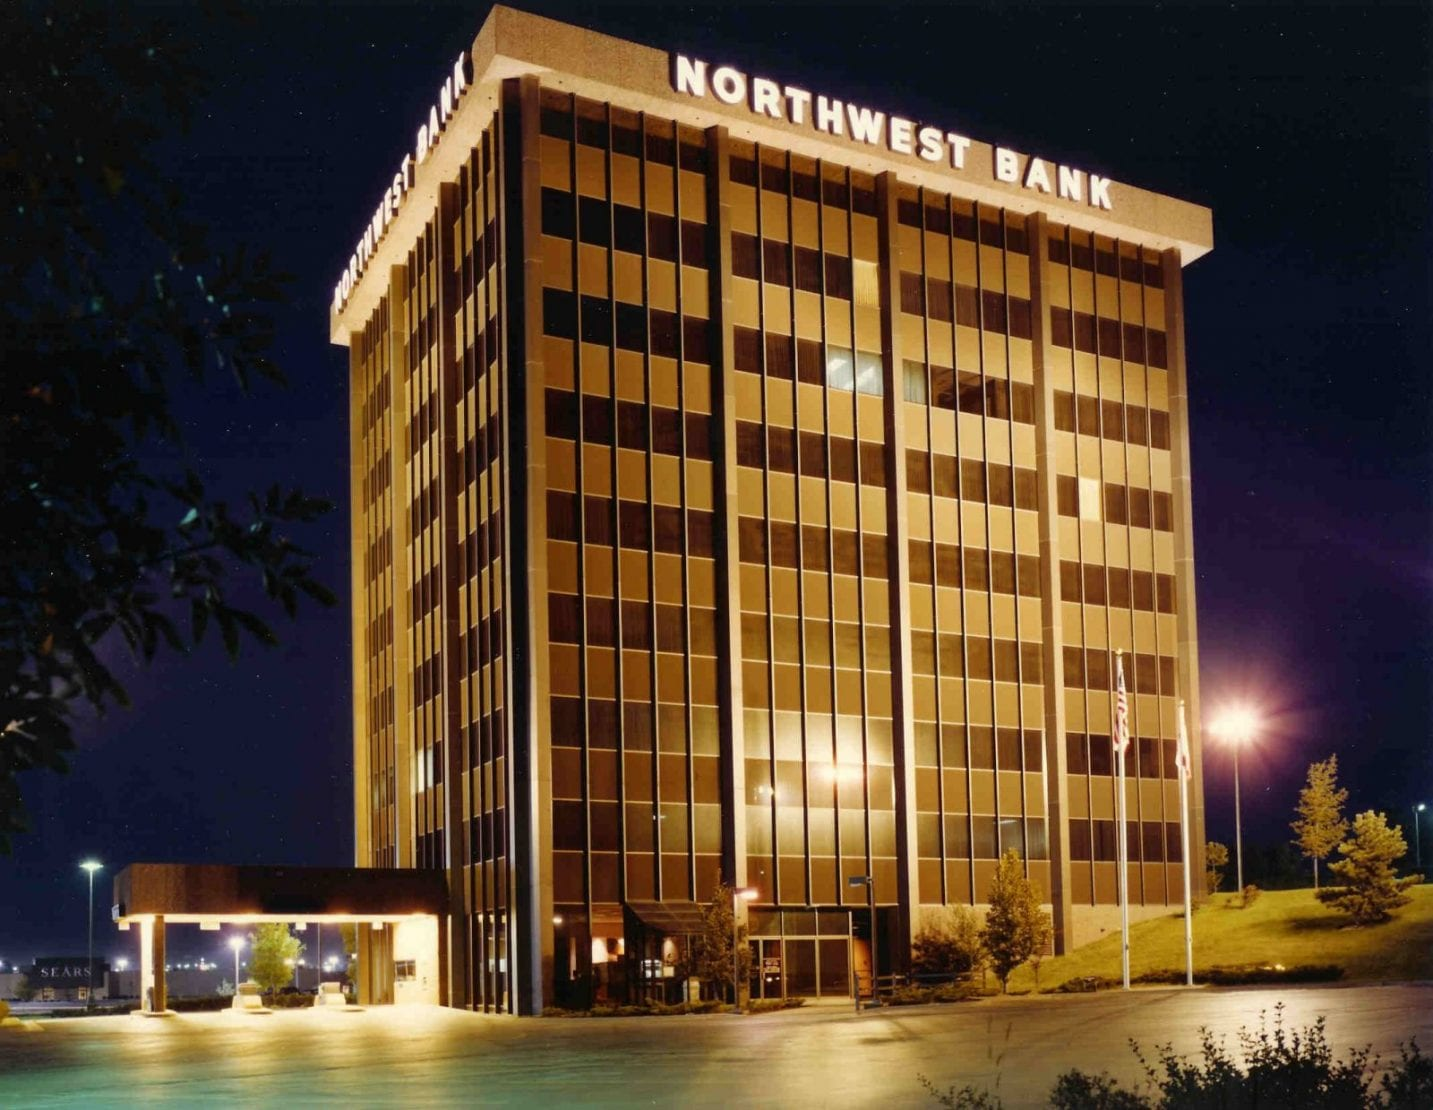 NorthPark Tower Davenport Iowa